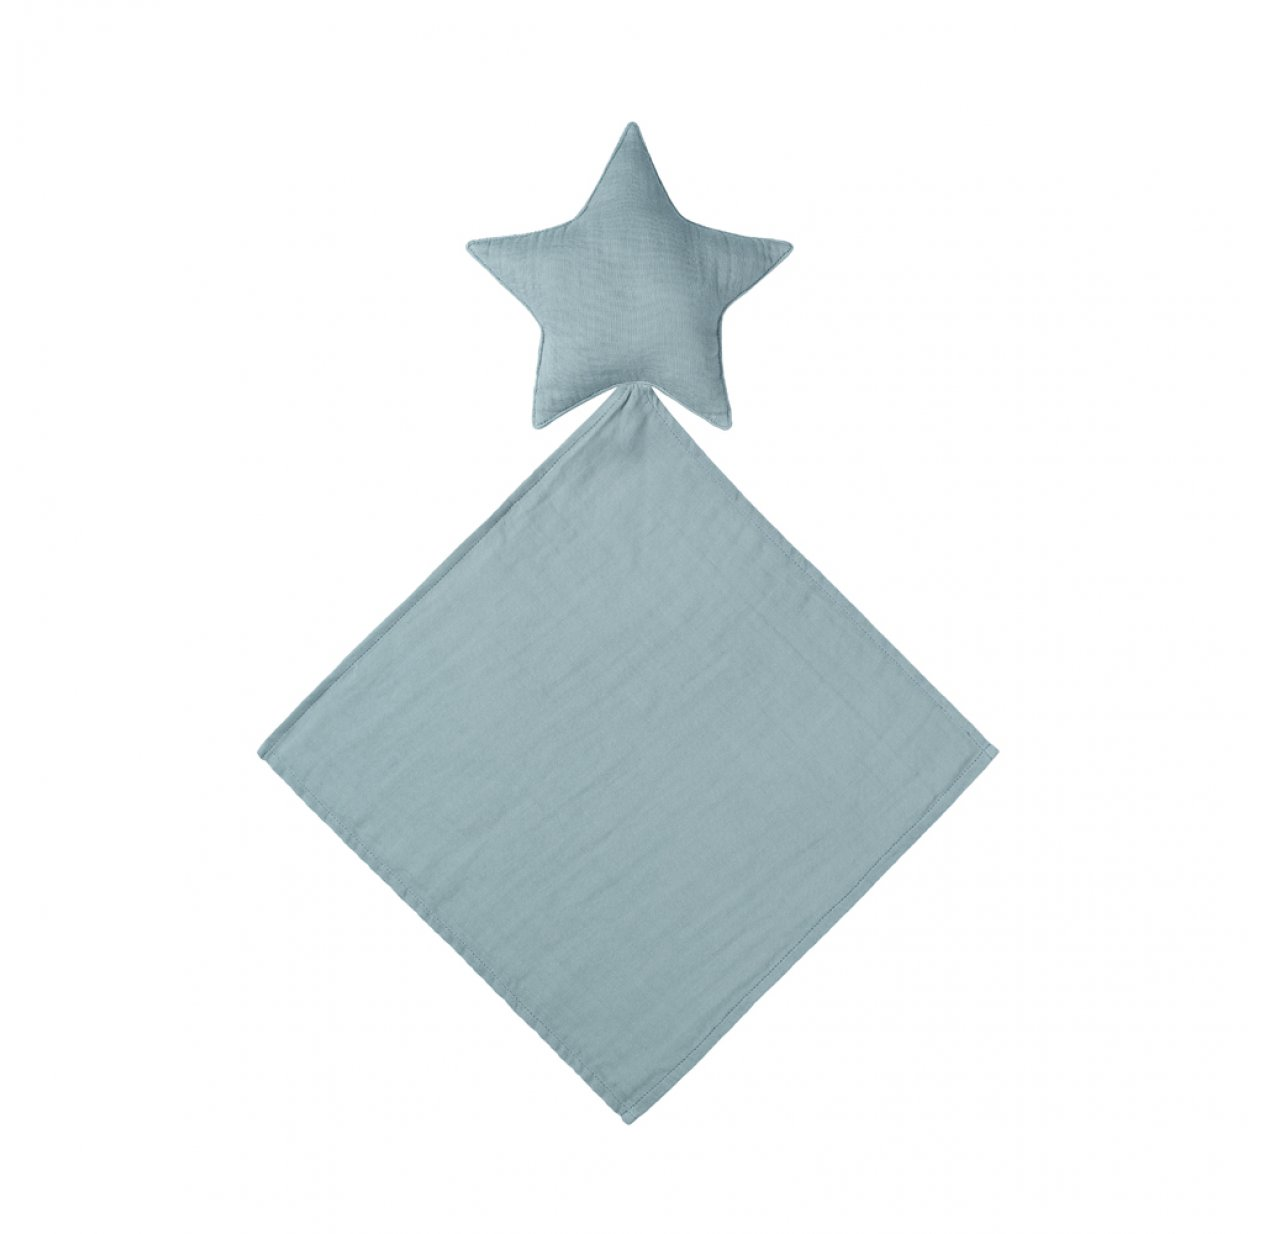 Doudou étoile Lovely Star sweet blue - Bleu clair